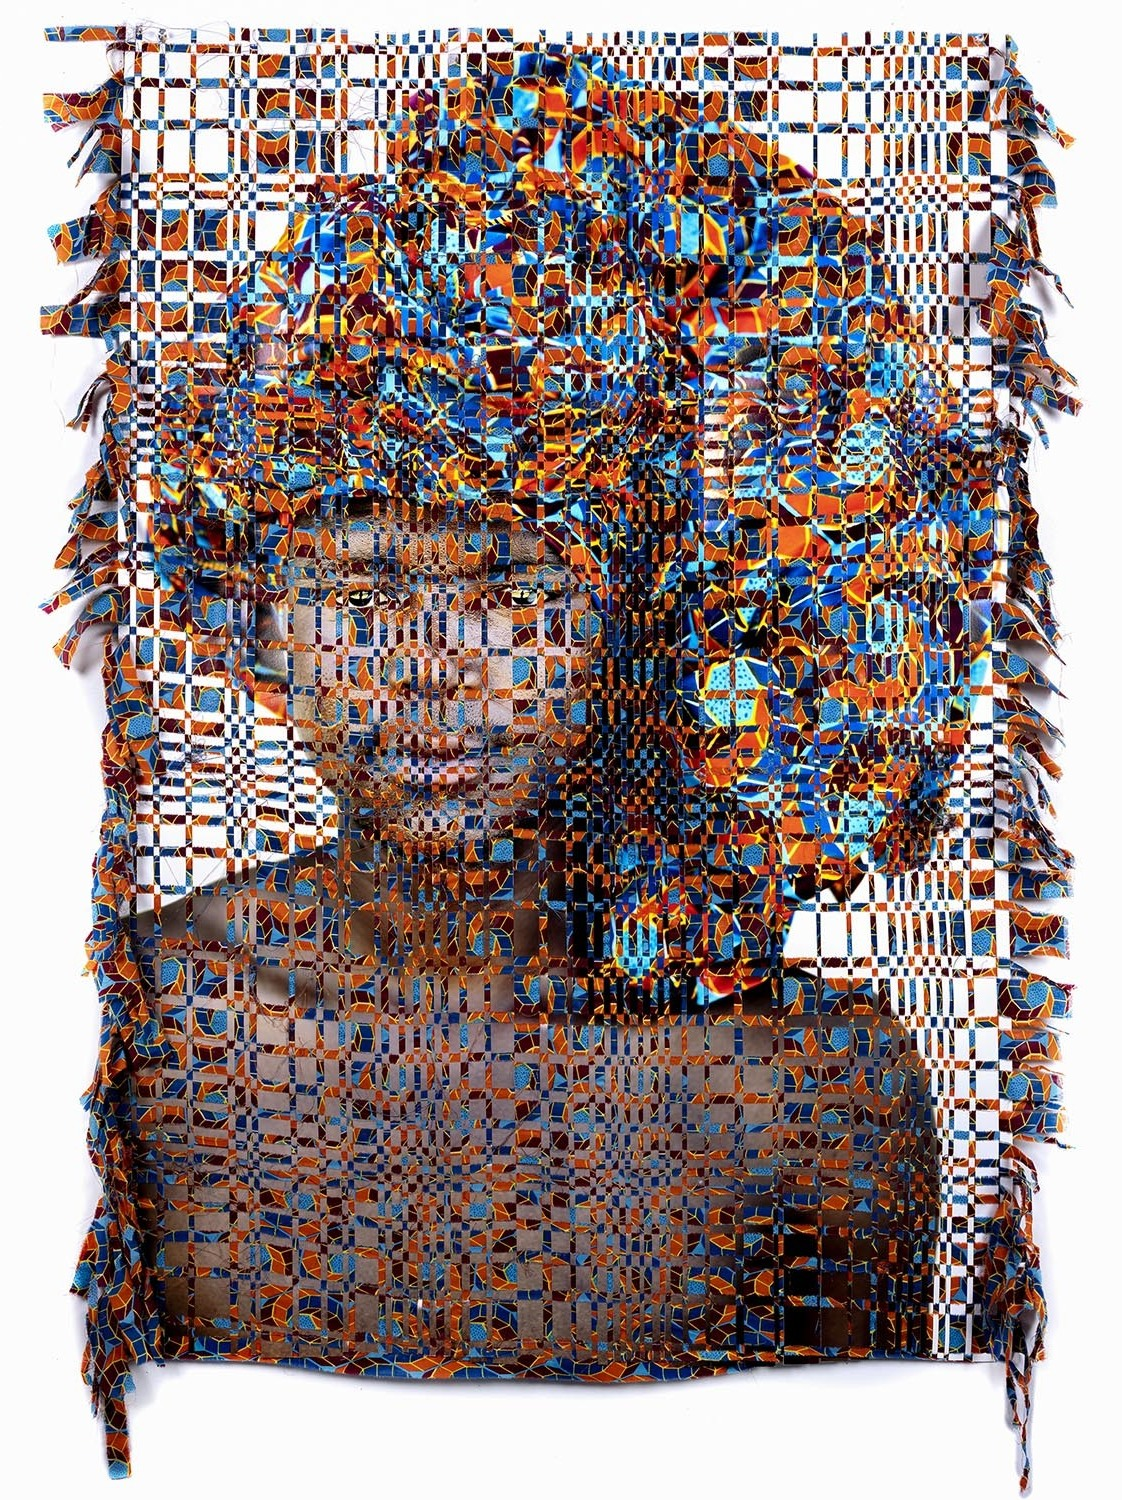 Kyle Meyer, born in Ohio in 1985, combines photography with woven tapestry techniques inspired by traditional African crafts to explore the nature of closeted LGBT identity in this work from his series Unidentified.